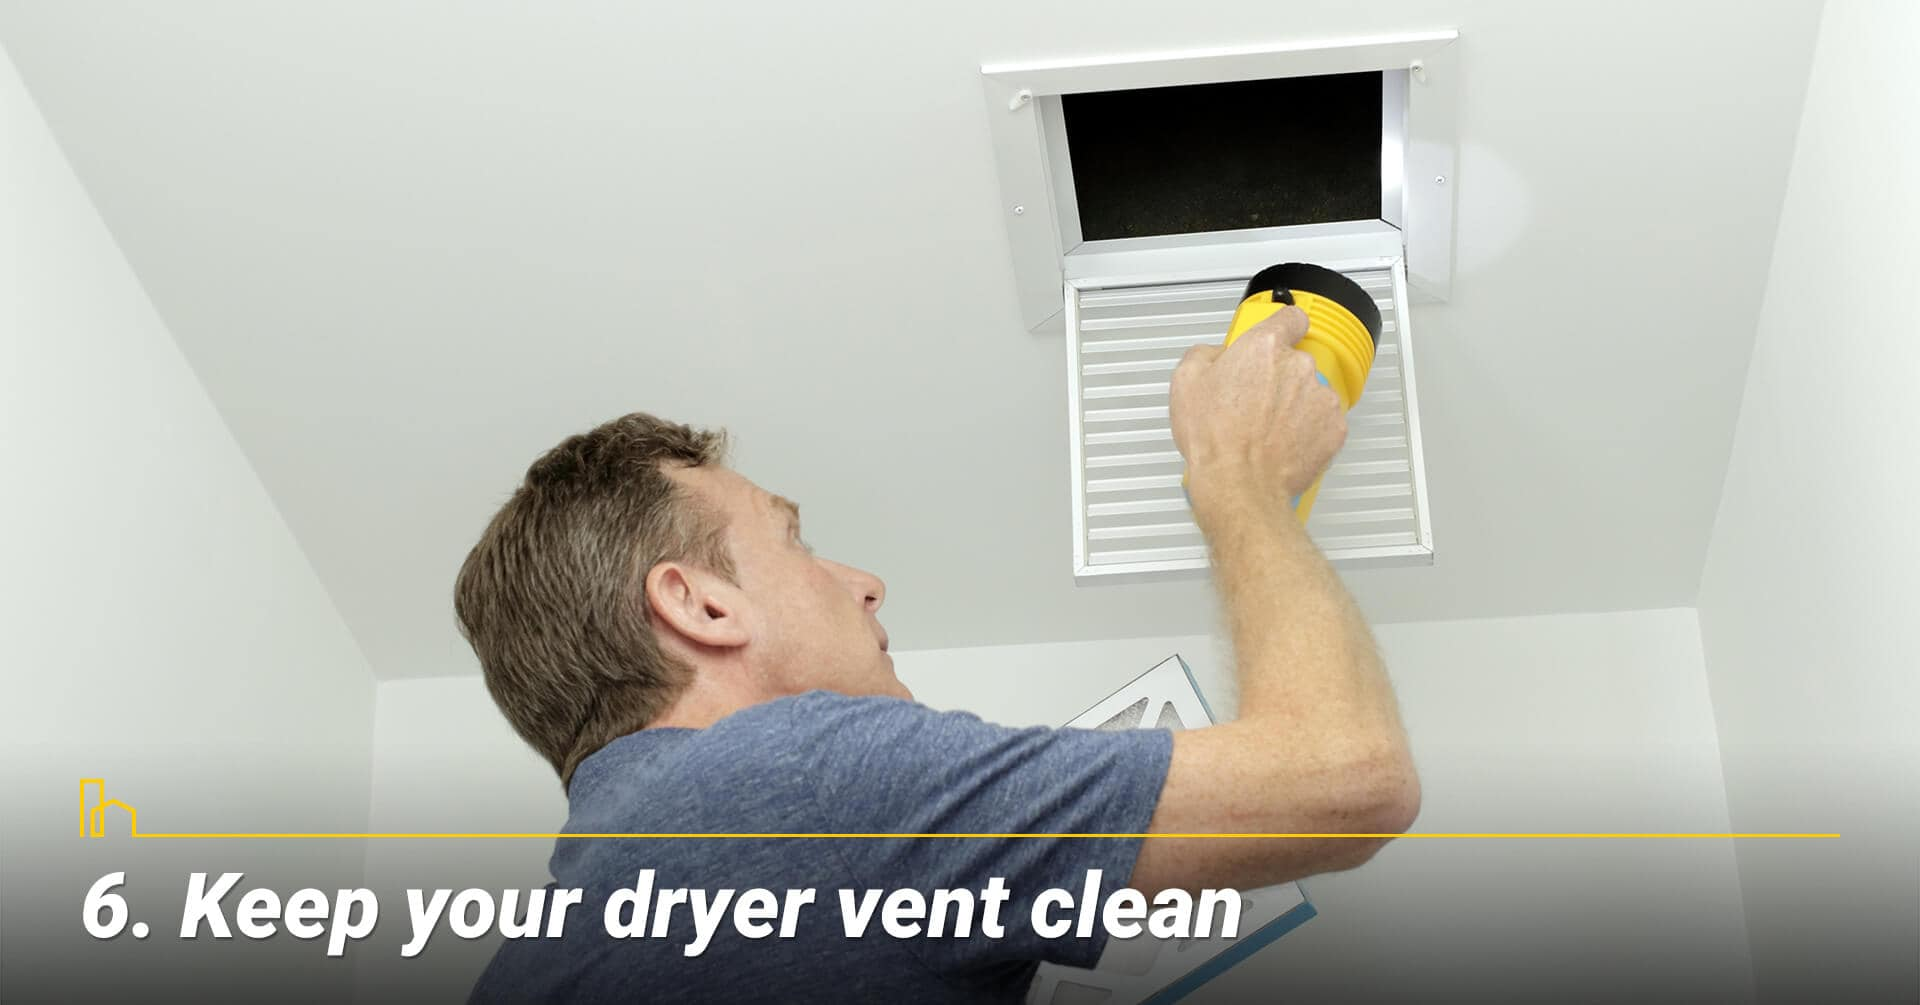 Keep your dryer vent clean